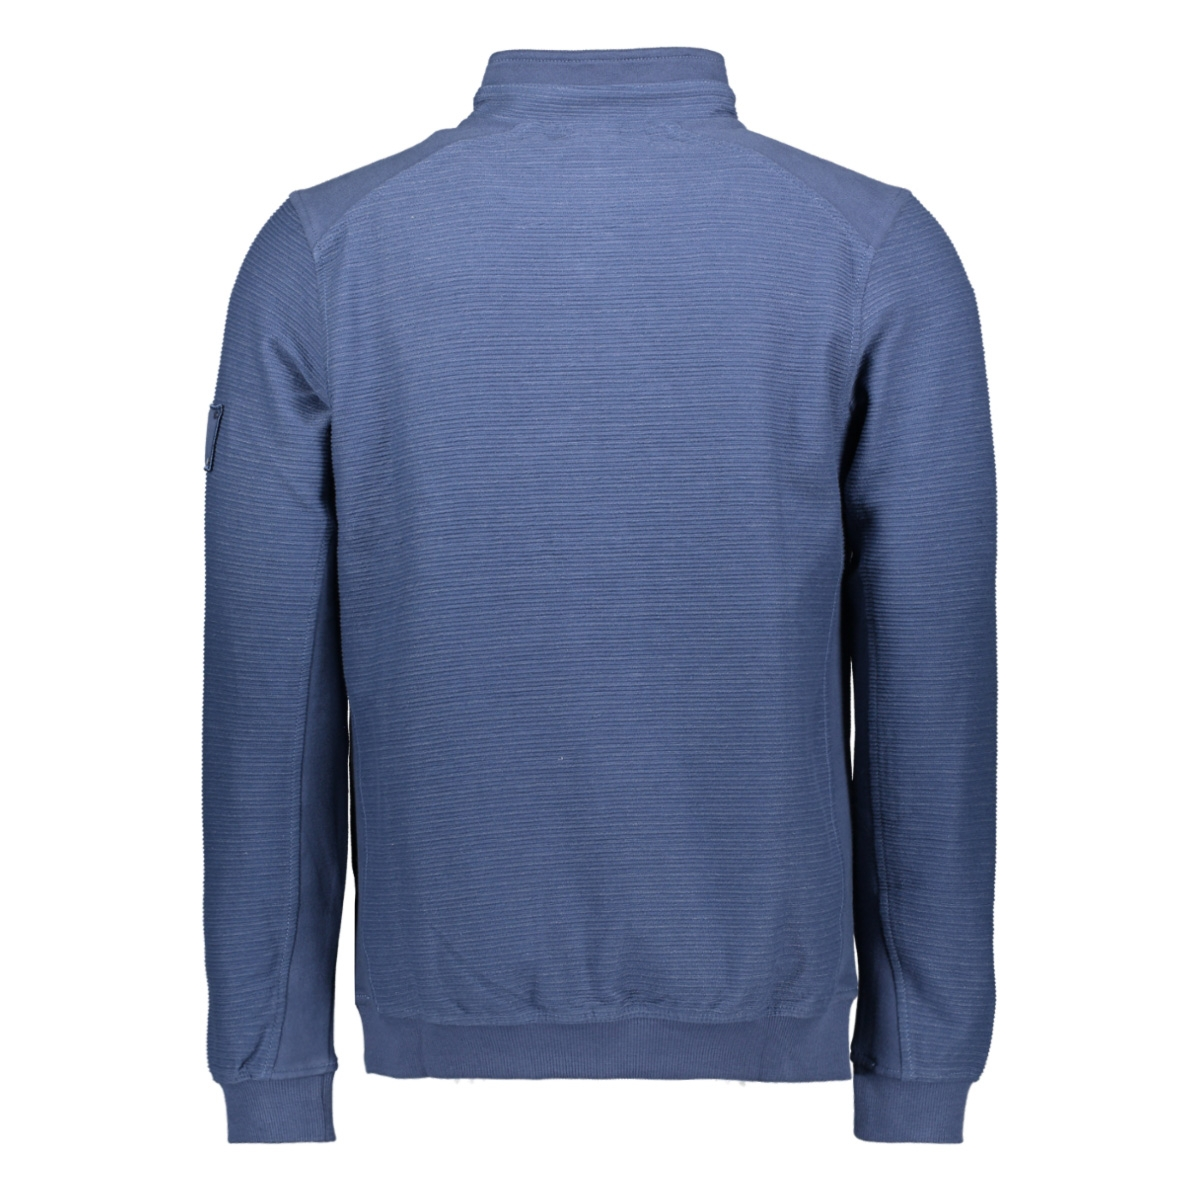 sweatshirt met highneck 2994441 lerros sweater 448